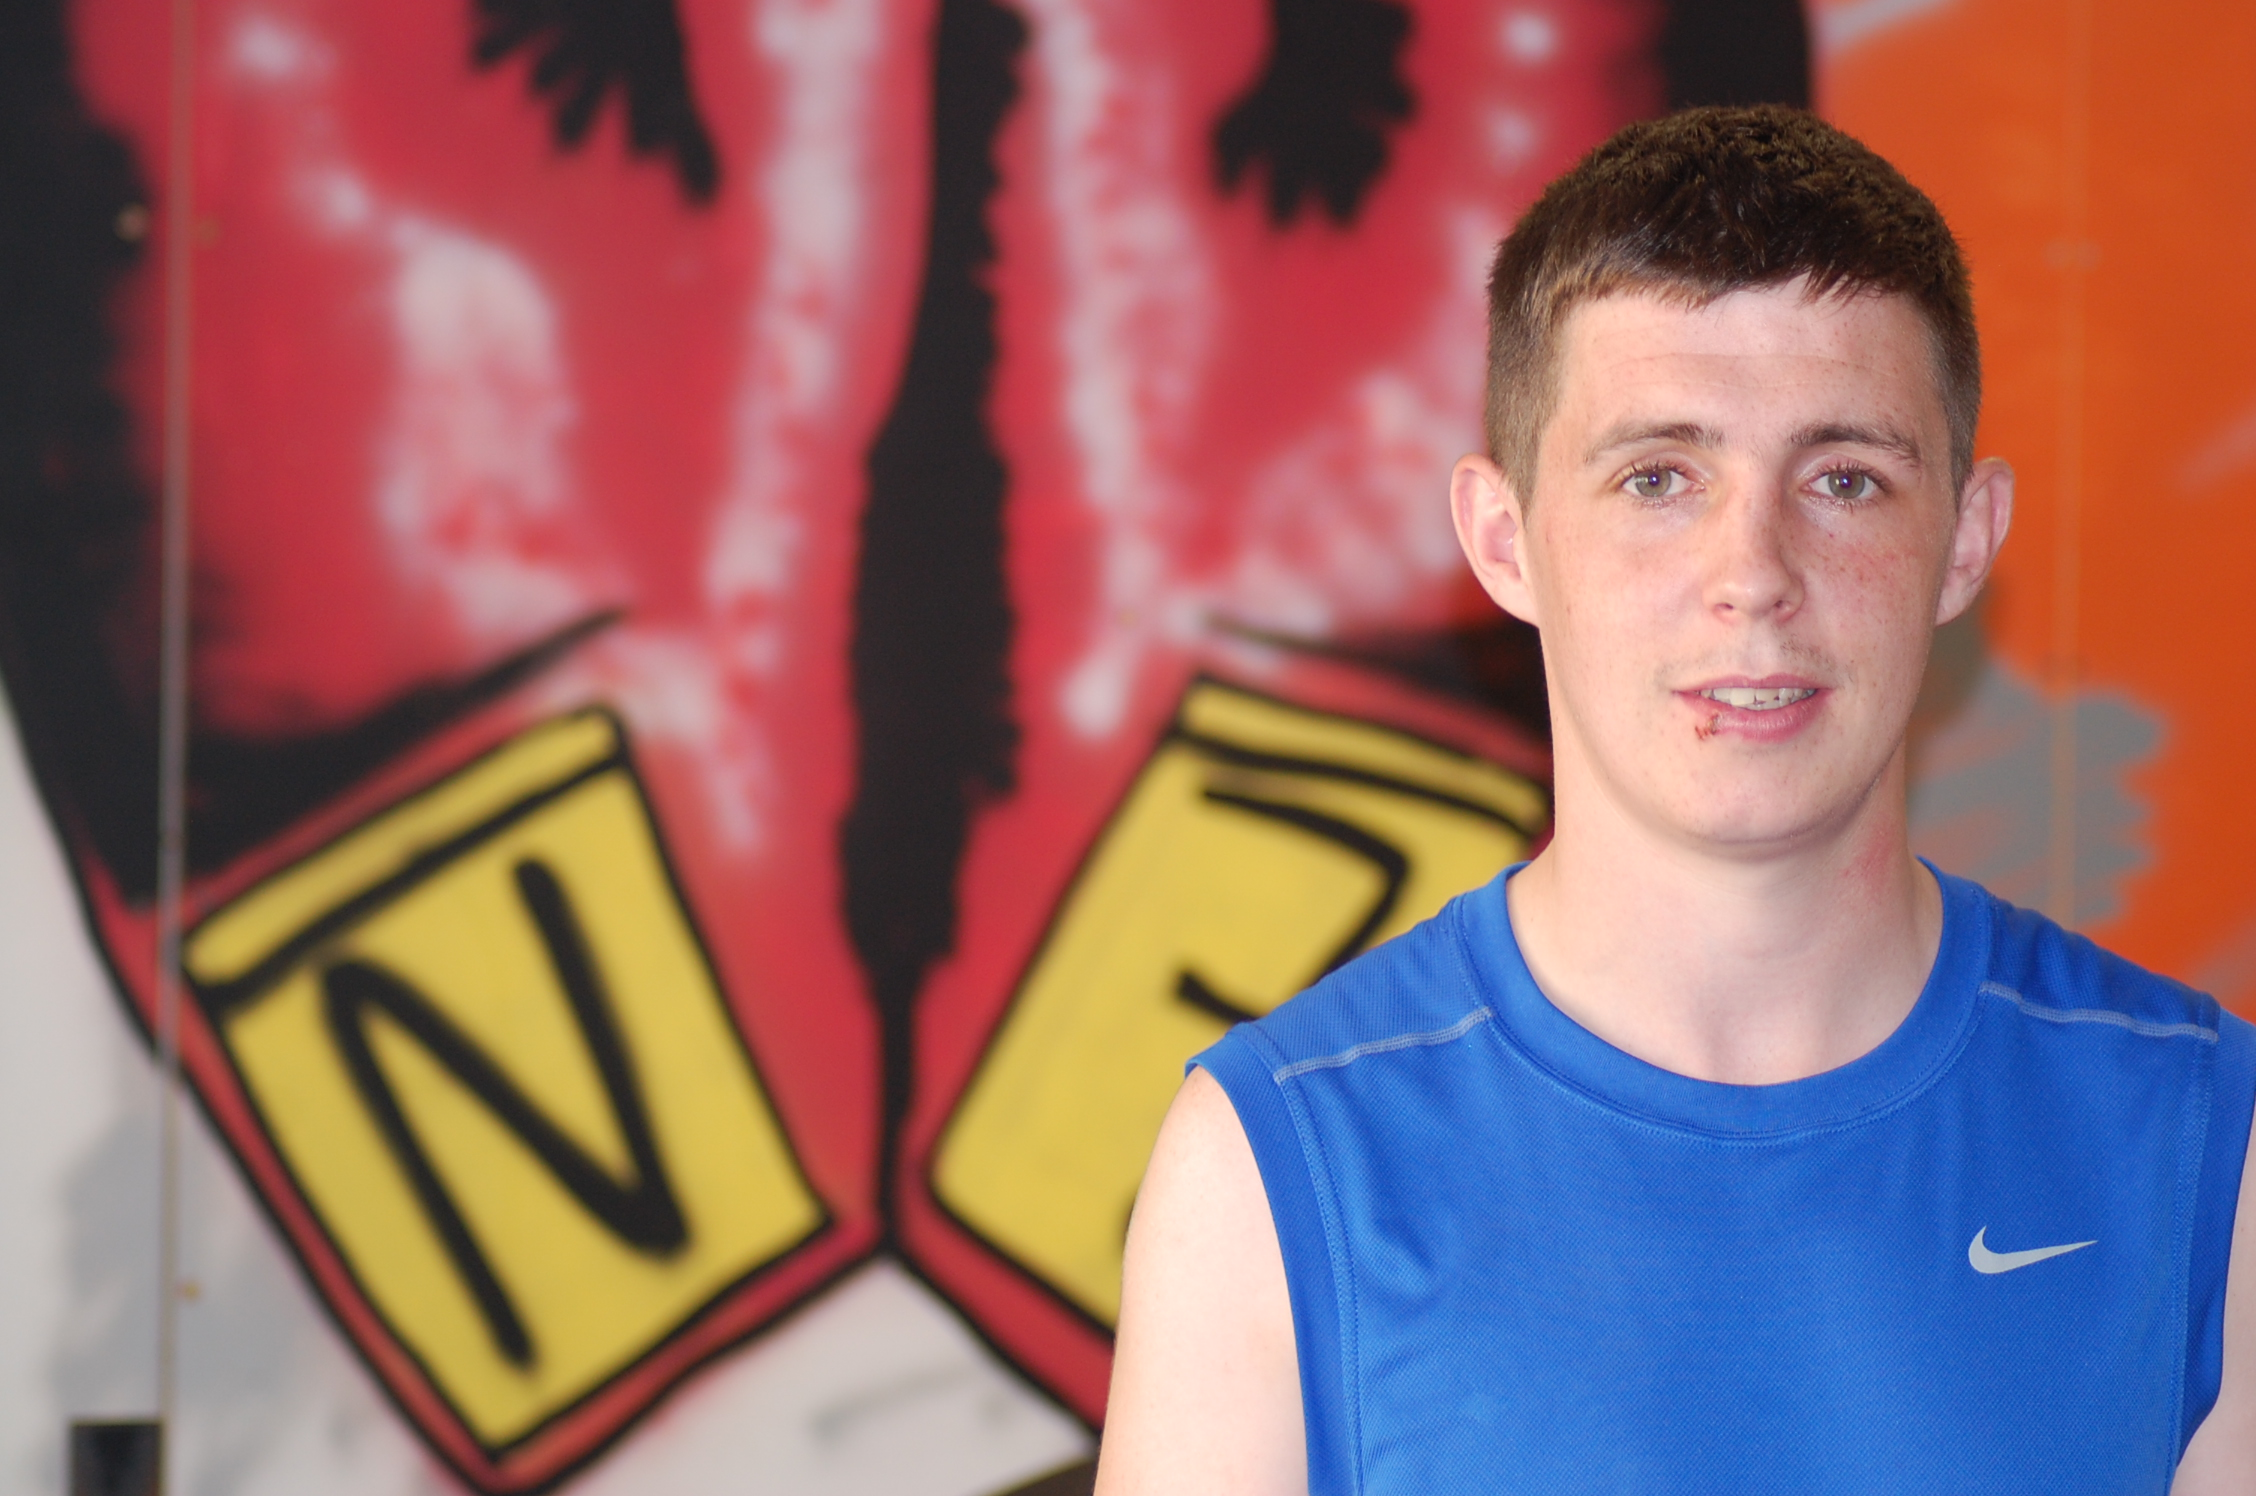 Carl McDonald Tallaght Boxer